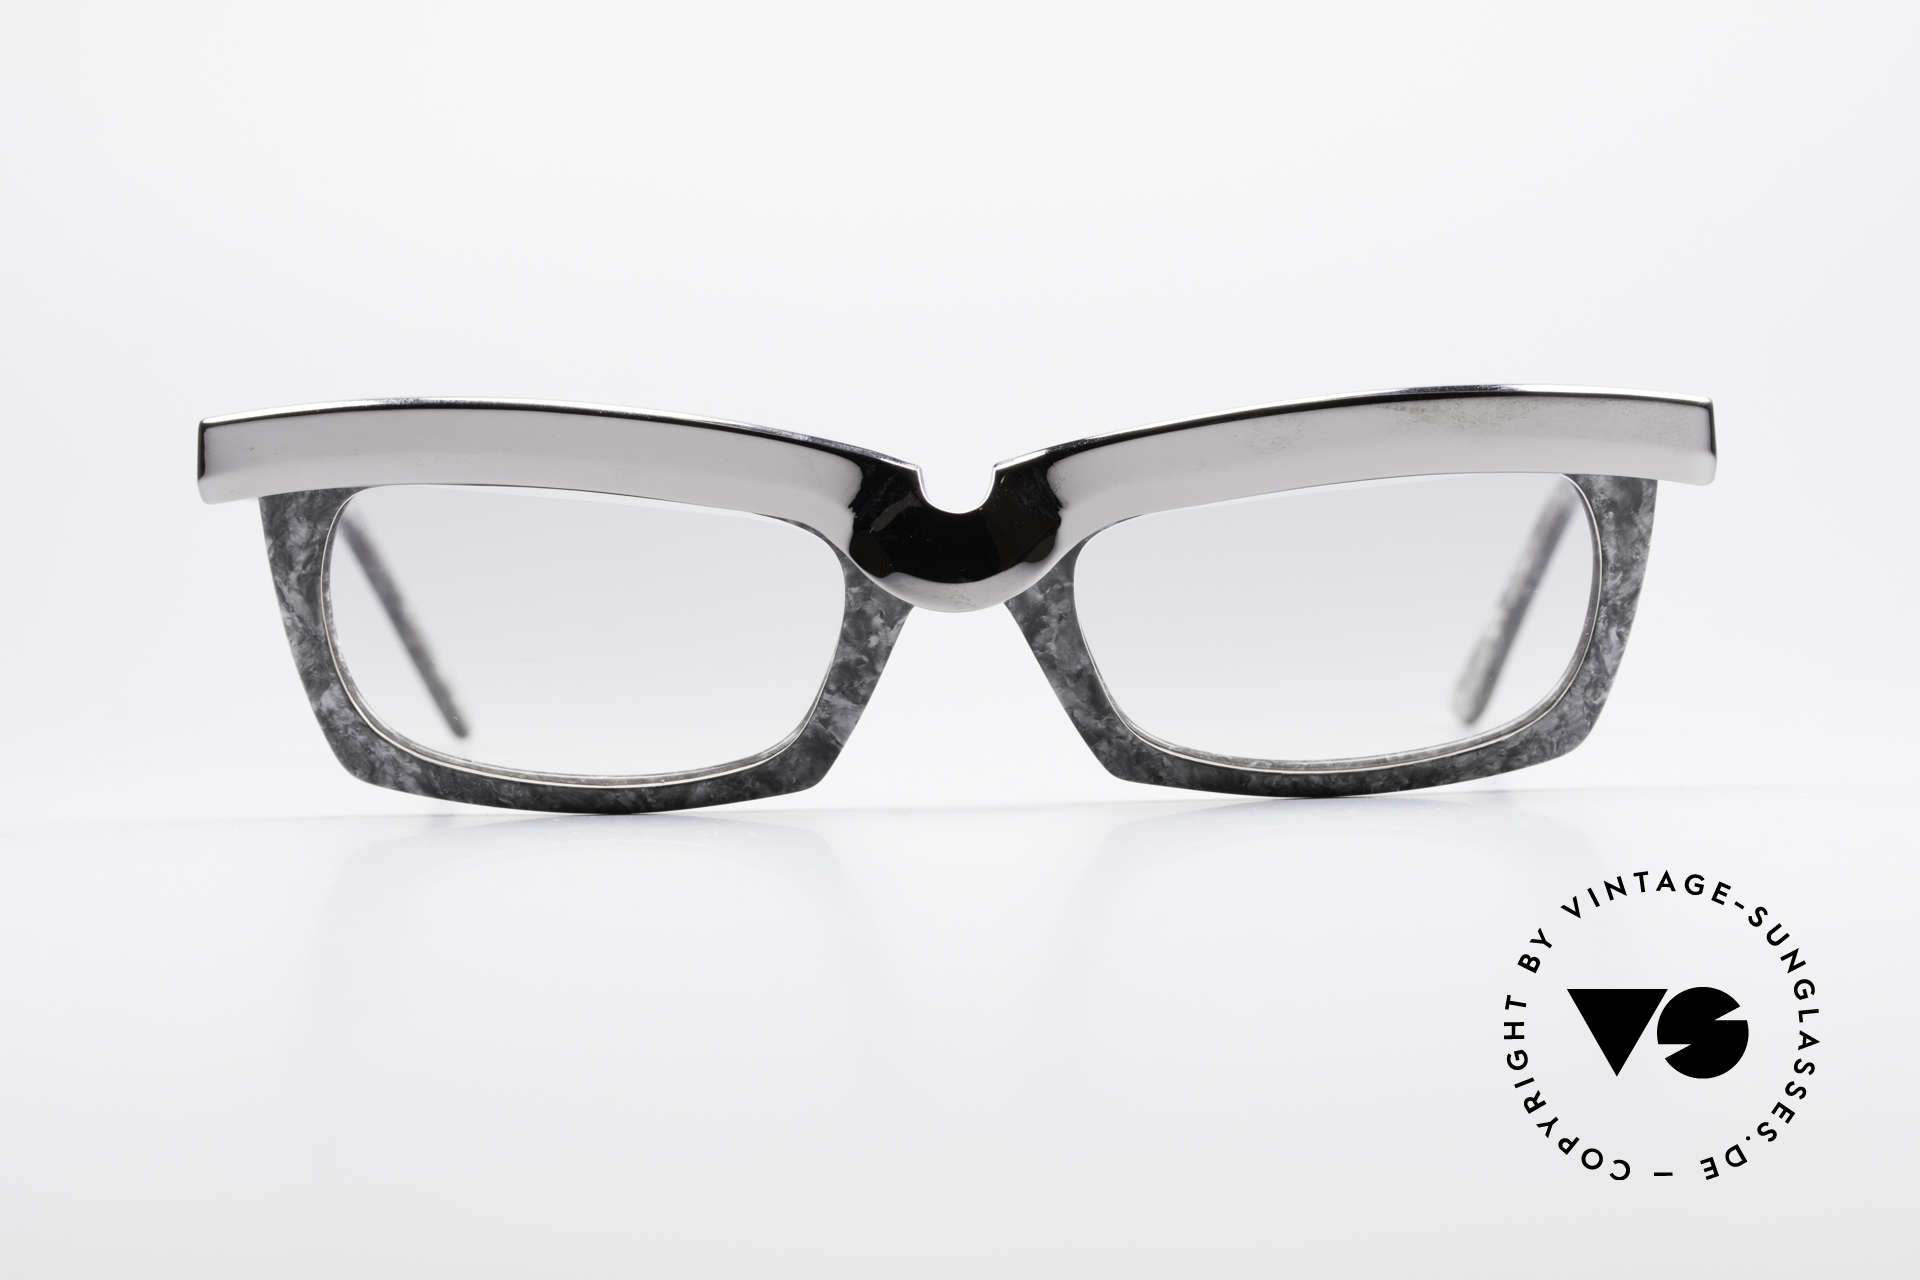 Alain Mikli 611 / 021 Spectacular 80's Sunglasses, spectacular frame construction with terrific pattern, Made for Men and Women